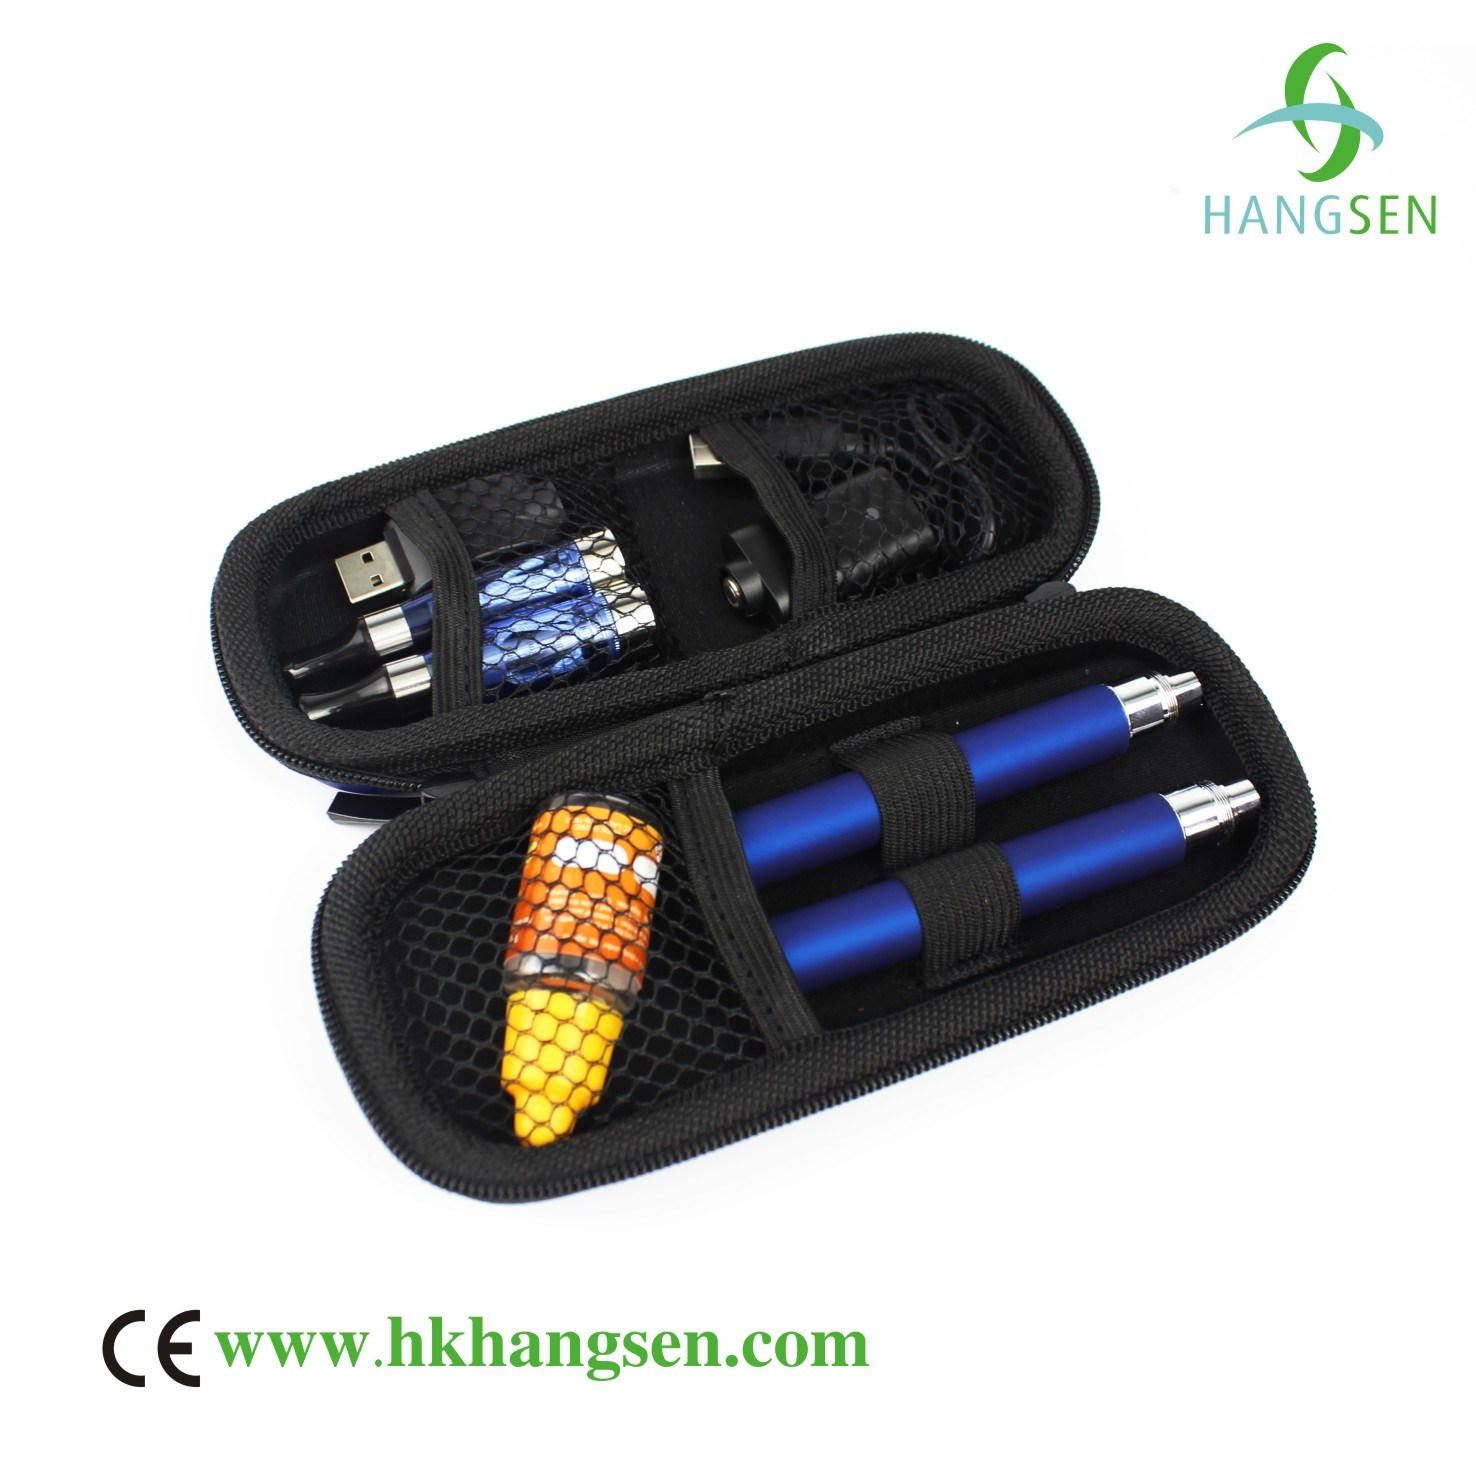 Portable EGO Case with Varies Colors